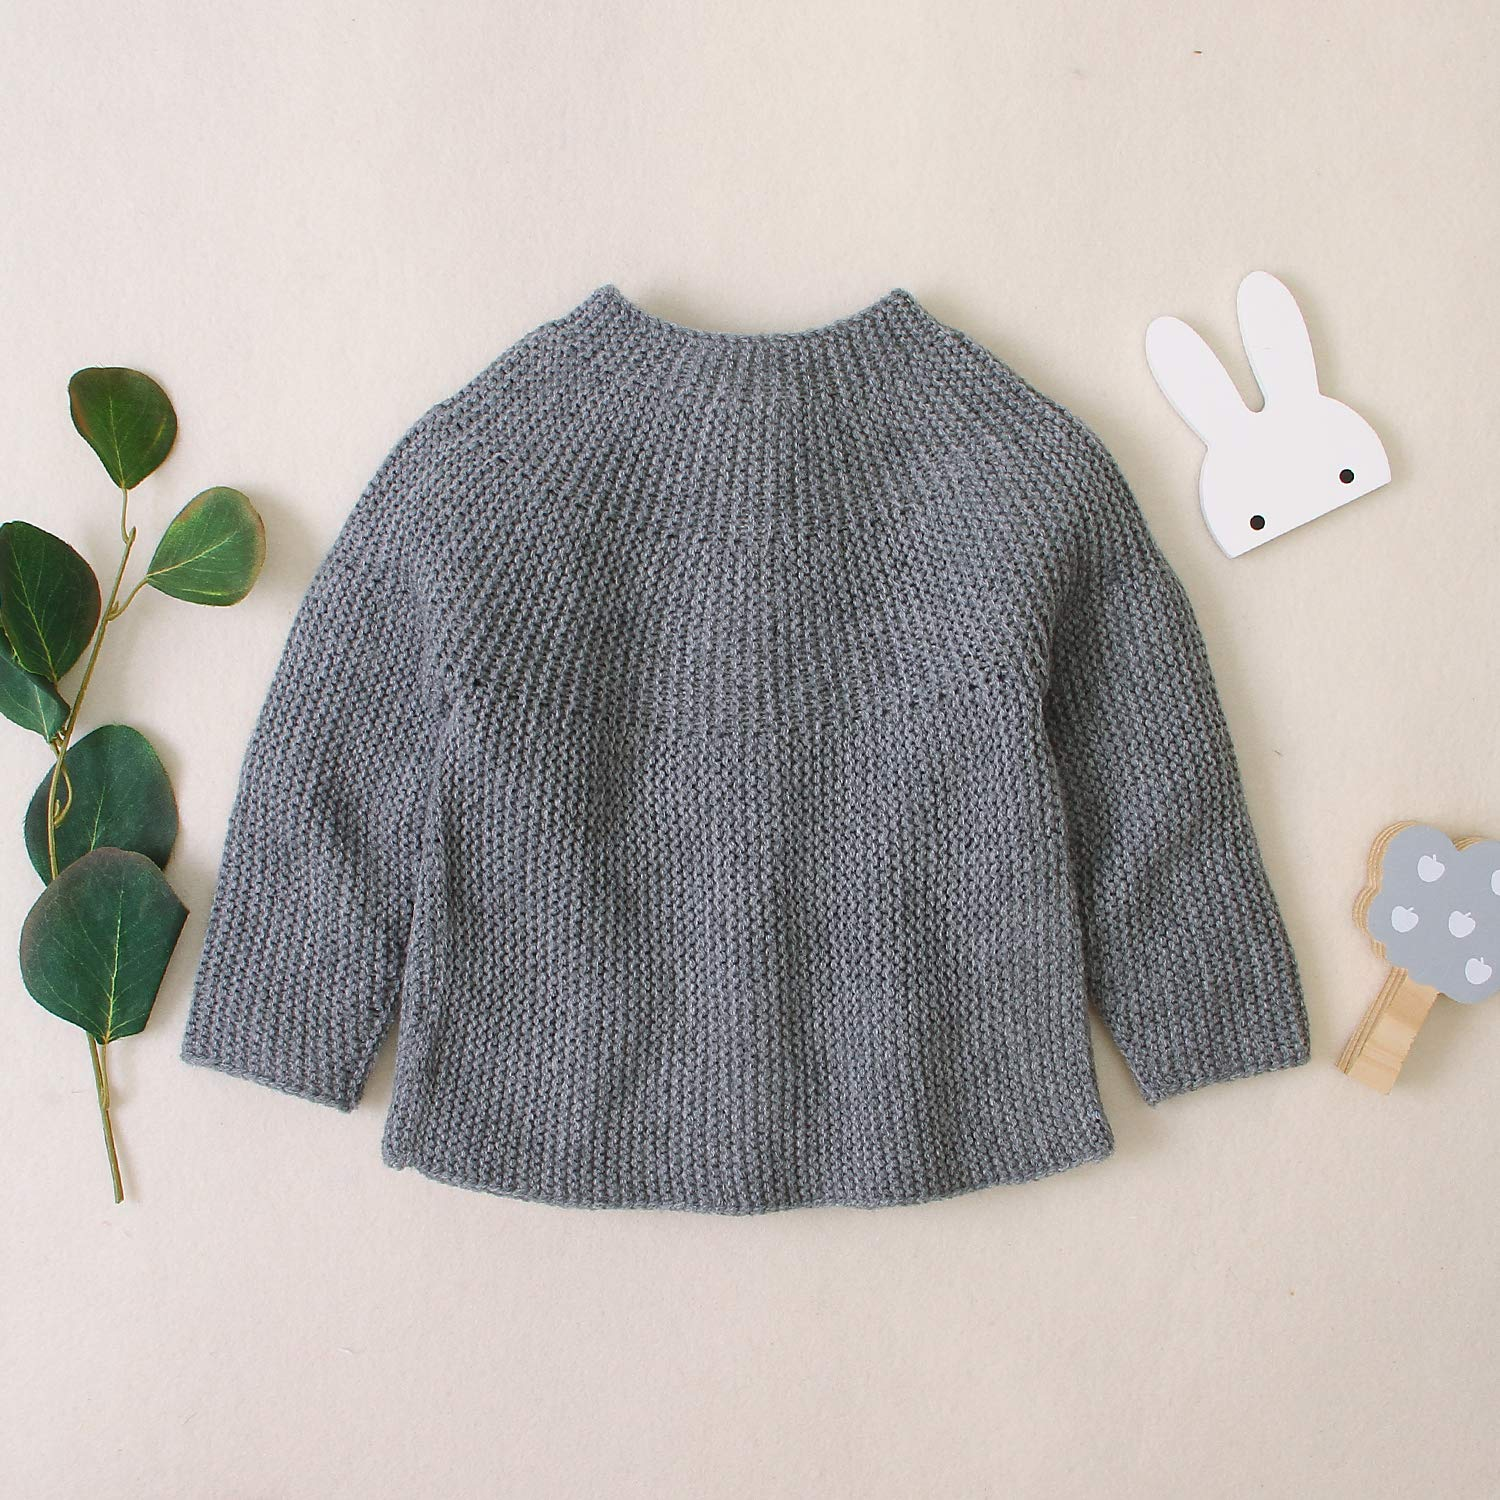 Infant Toddler Baby Girls Cardigan Sweater Long Sleeve Knitted Warm Jacket Coat Button Down Outwear Fall Winter Solid Color Knit Tops